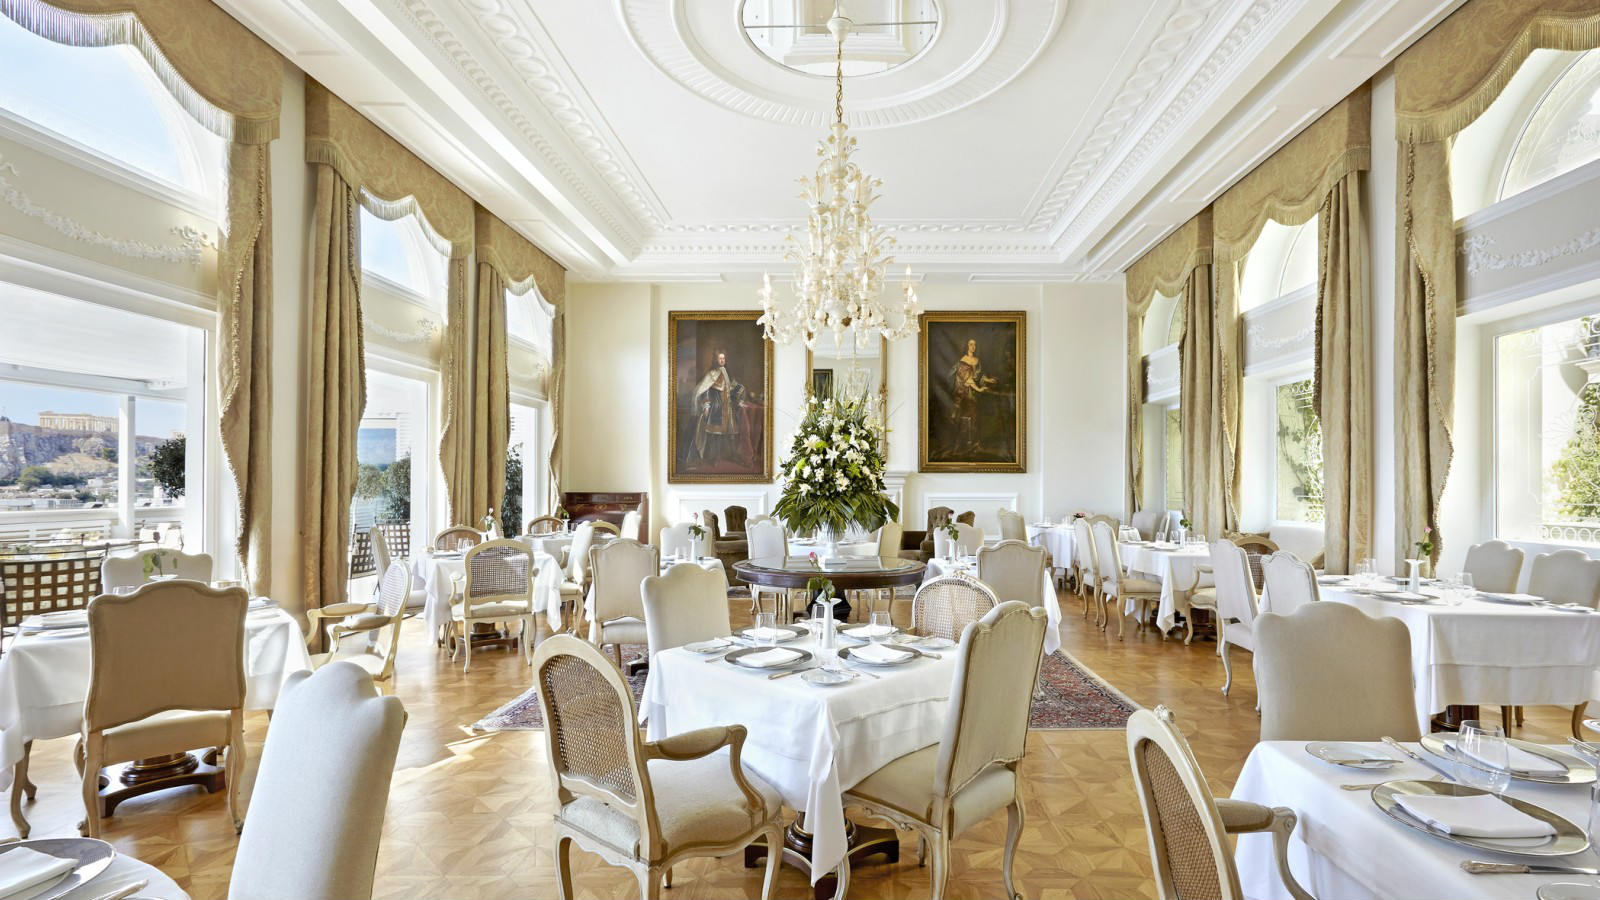 Tudor Hall restaurant in Athens Neo-classical decor Offering authentic Greek seasonal dishes with a modern twist King George Hotel